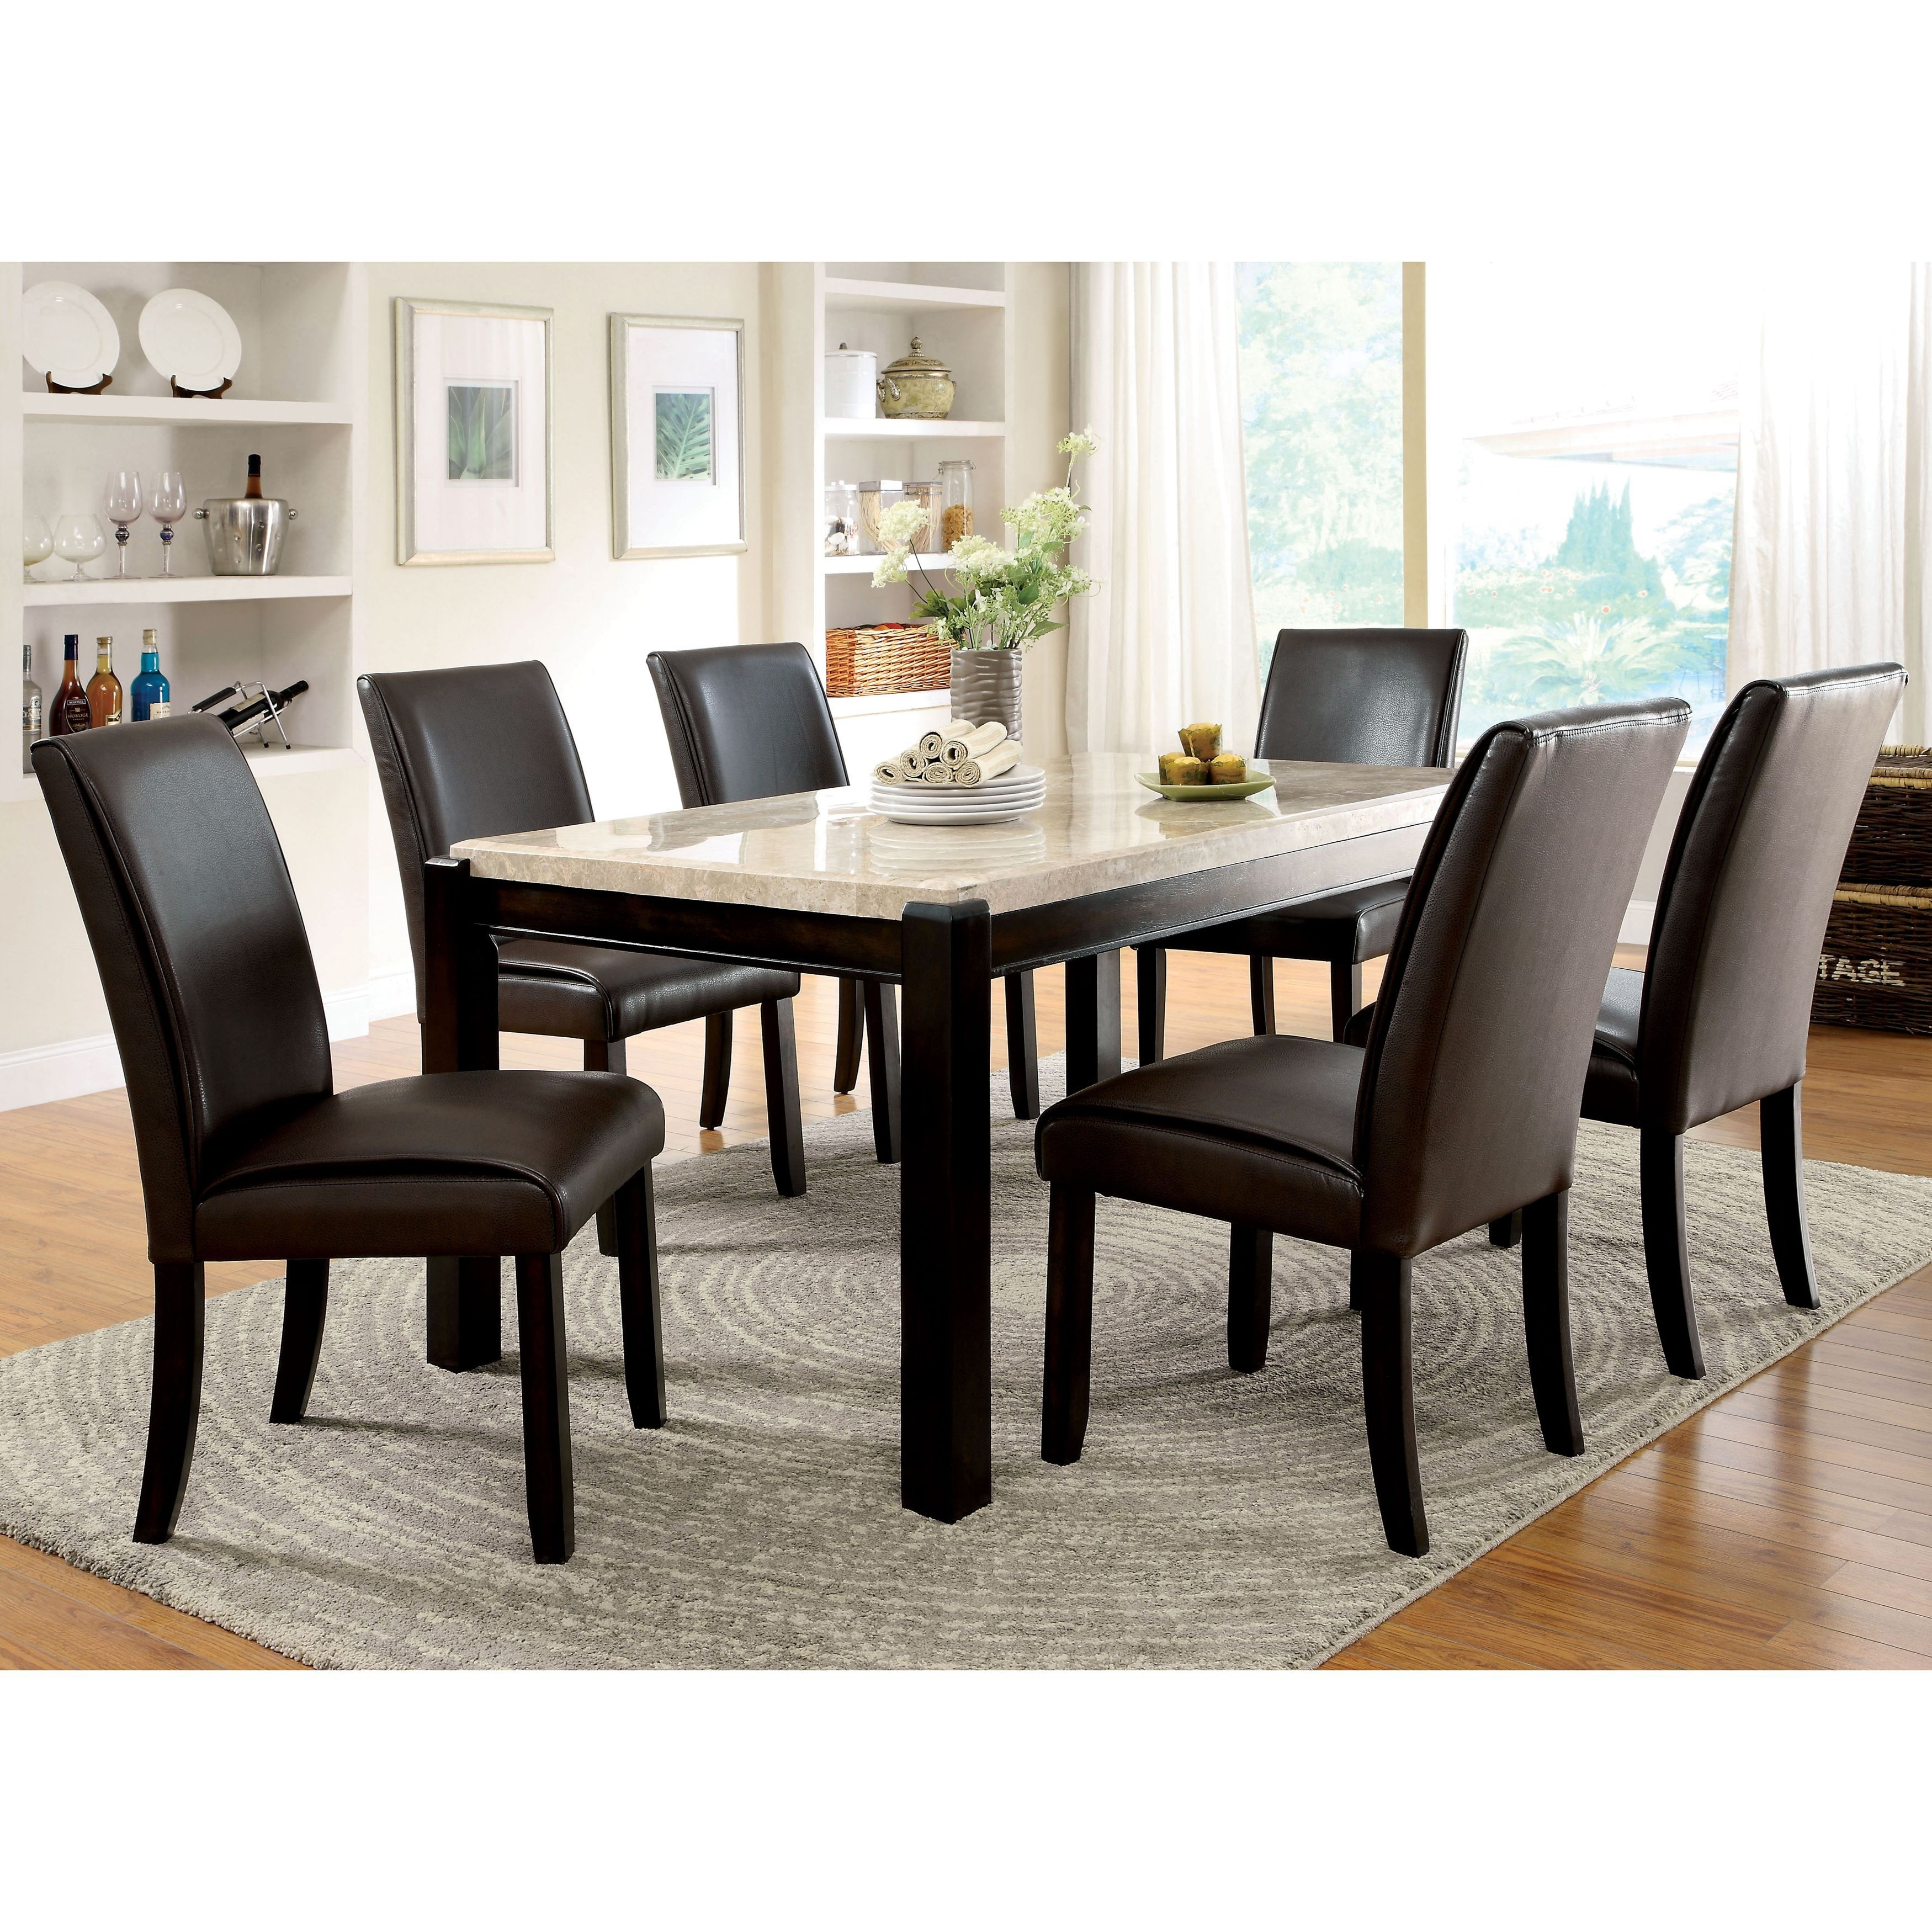 Furniture Of America Joreth 7 Piece Dark Walnut (Brown) Dining Set With Regard To Most Up To Date Palazzo 7 Piece Rectangle Dining Sets With Joss Side Chairs (View 4 of 20)